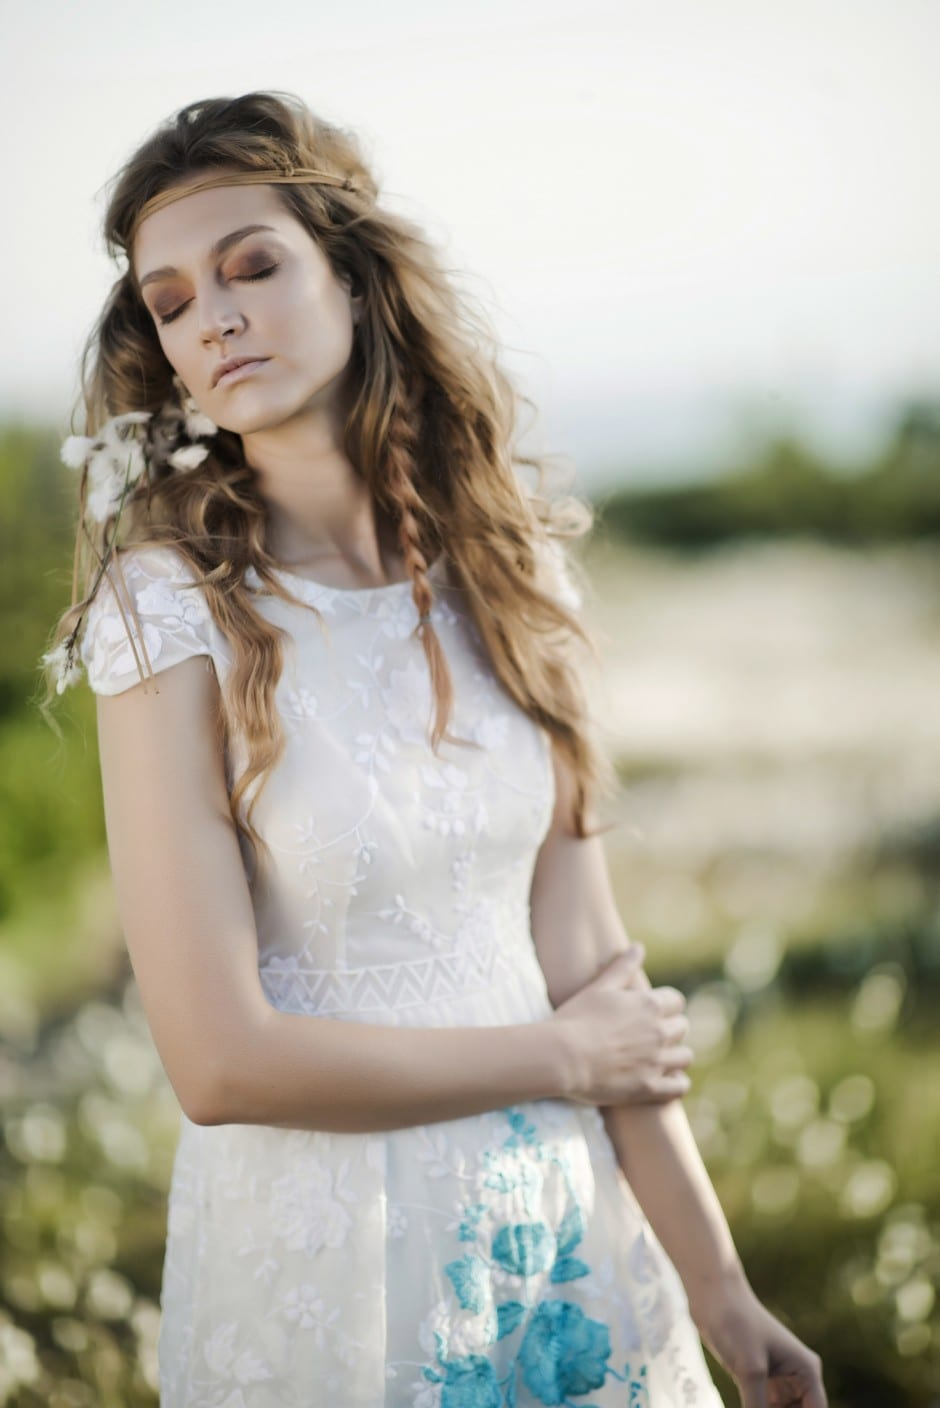 Morgan Davies Bridal - Designer Wedding Dresses. Anna Kara, Claire